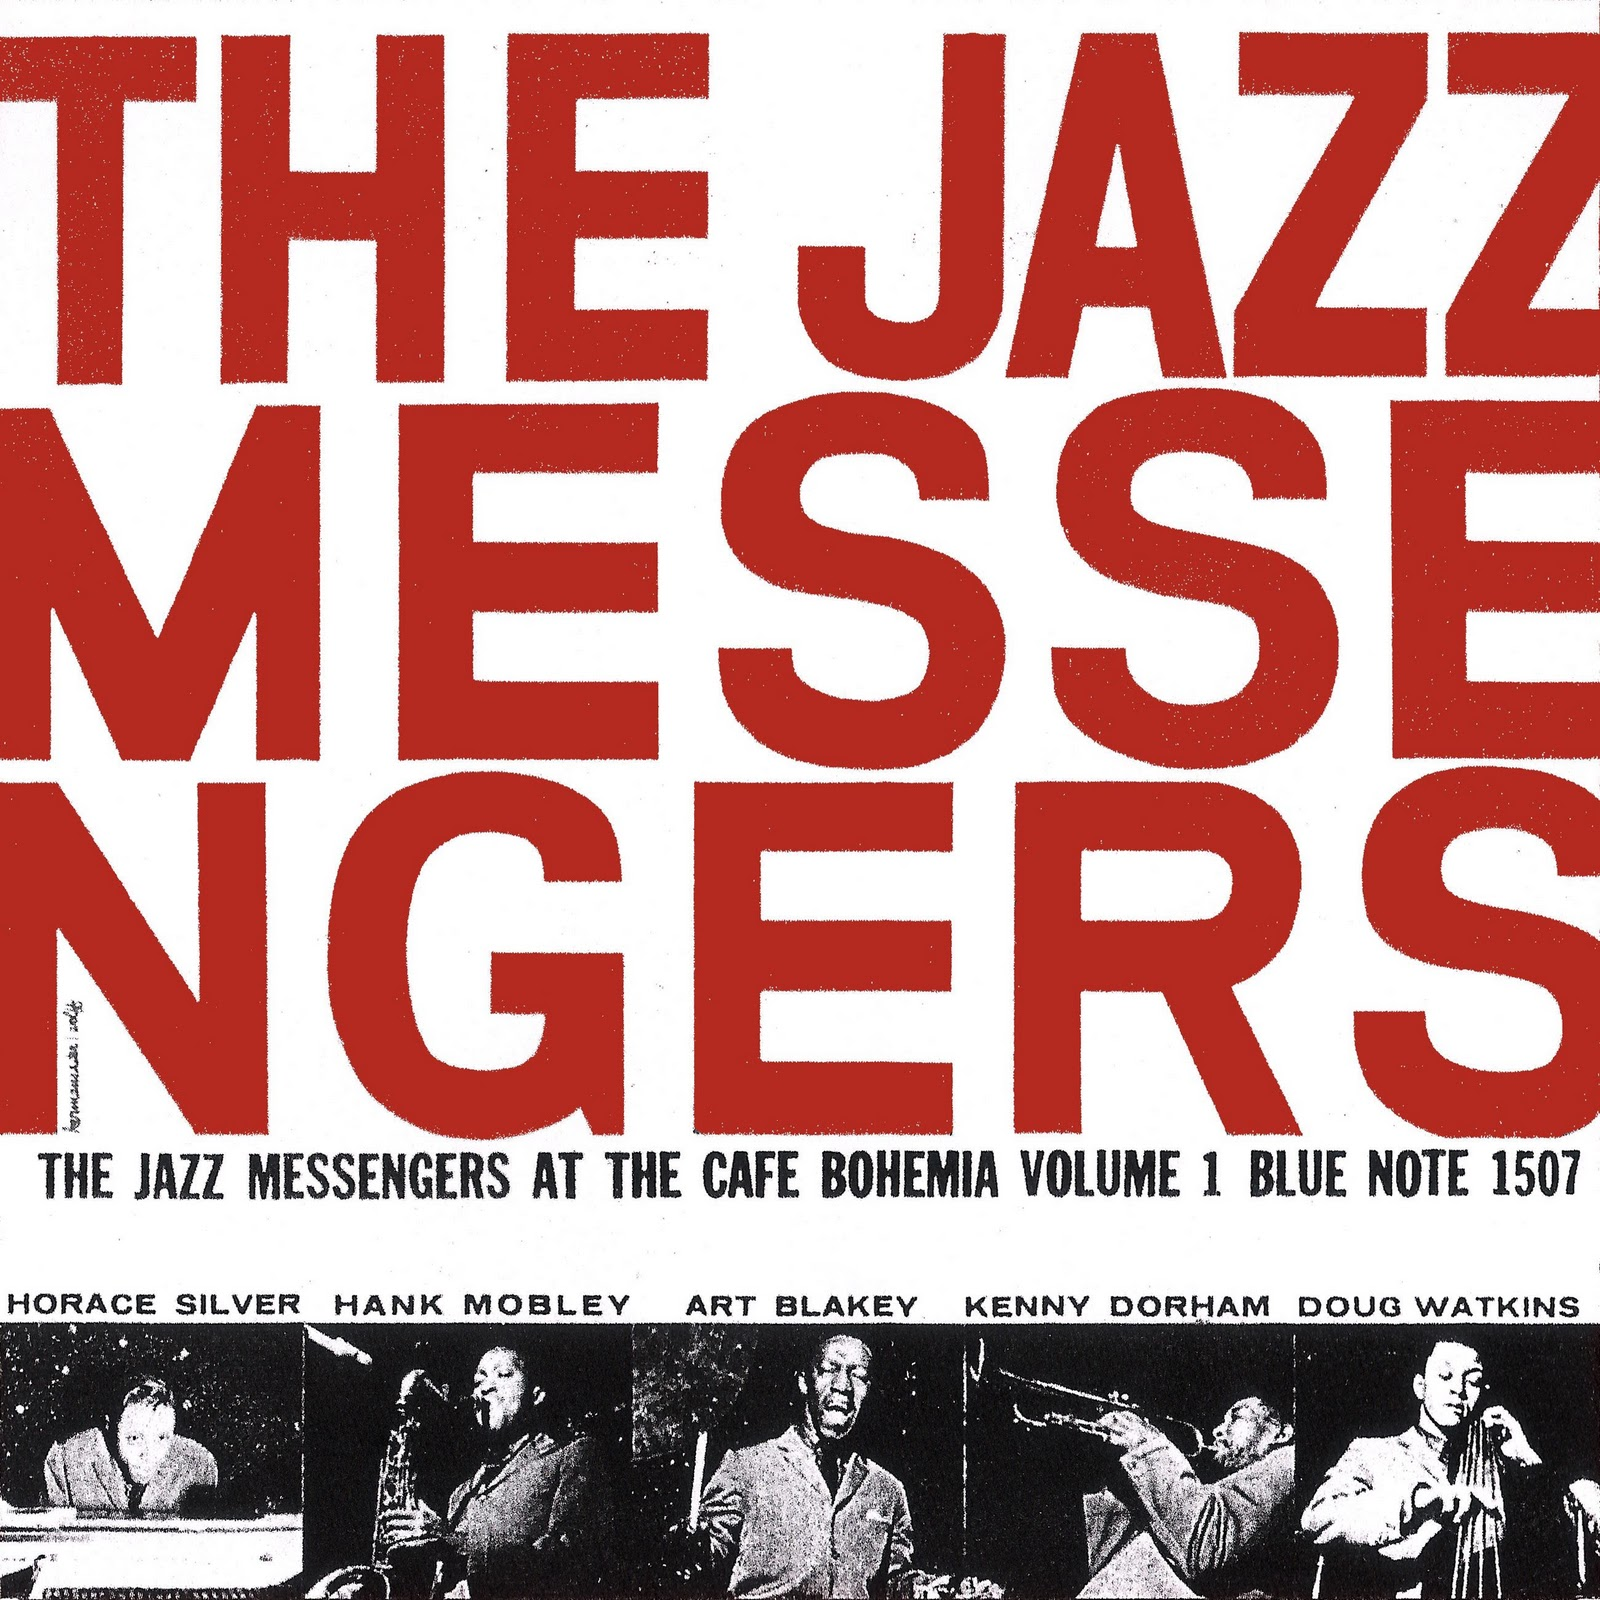 art blakey & the jazz messengers - live at the cafe bohemia vol. 1 (sleeve art)